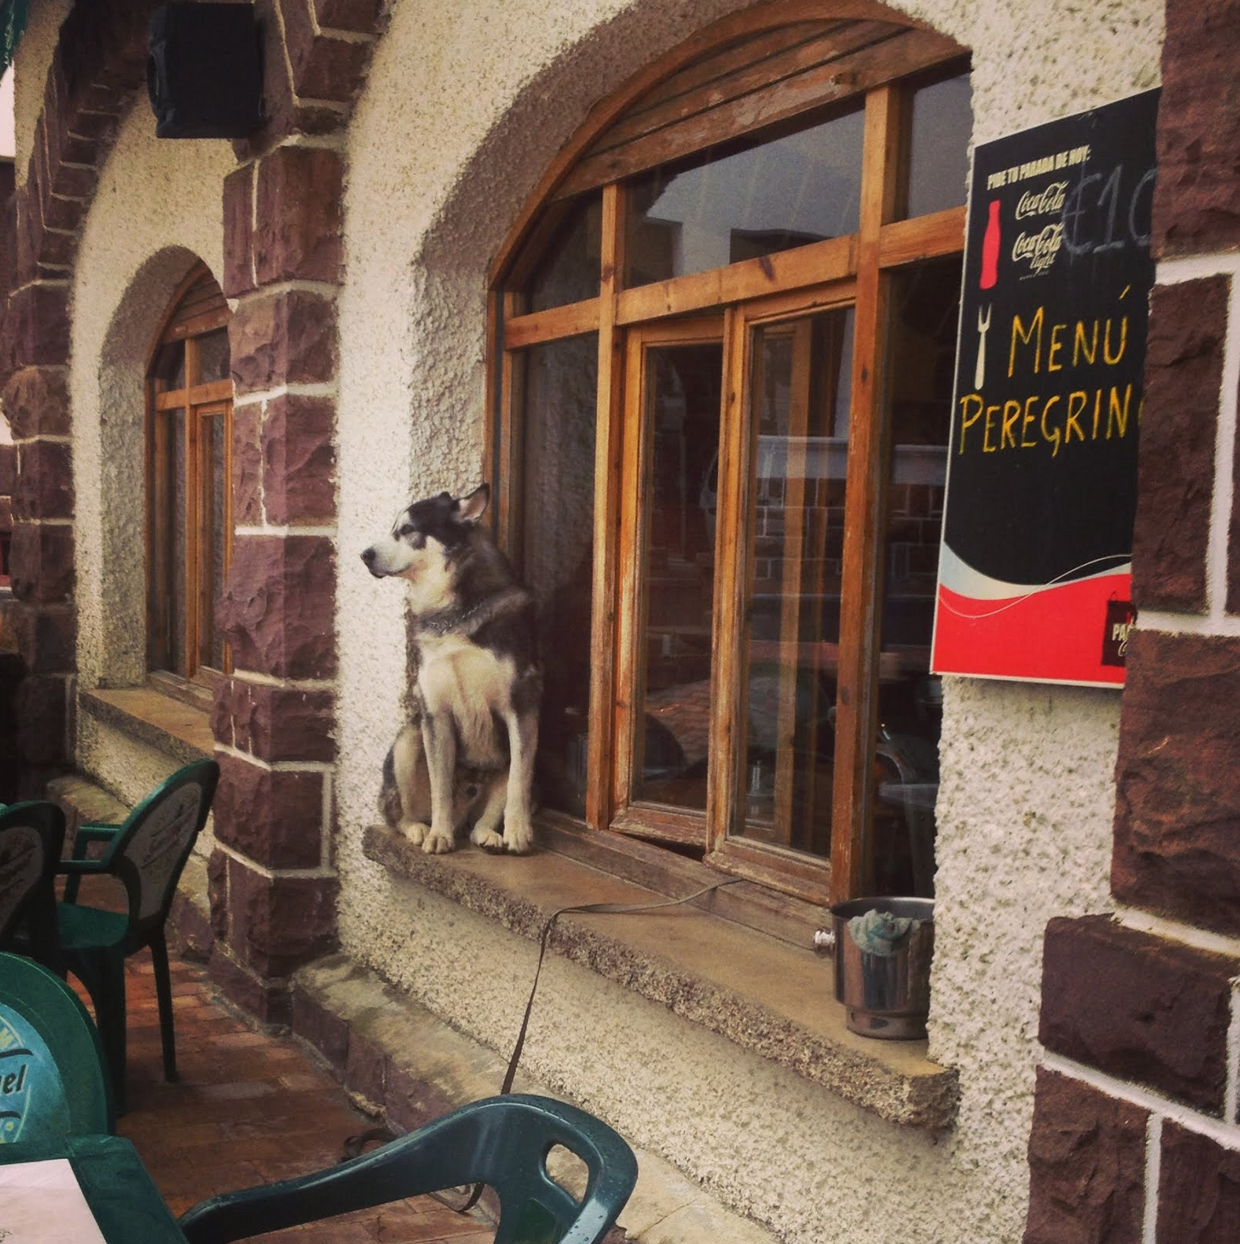 The Cafe we stopped at came with a doggy in the window.